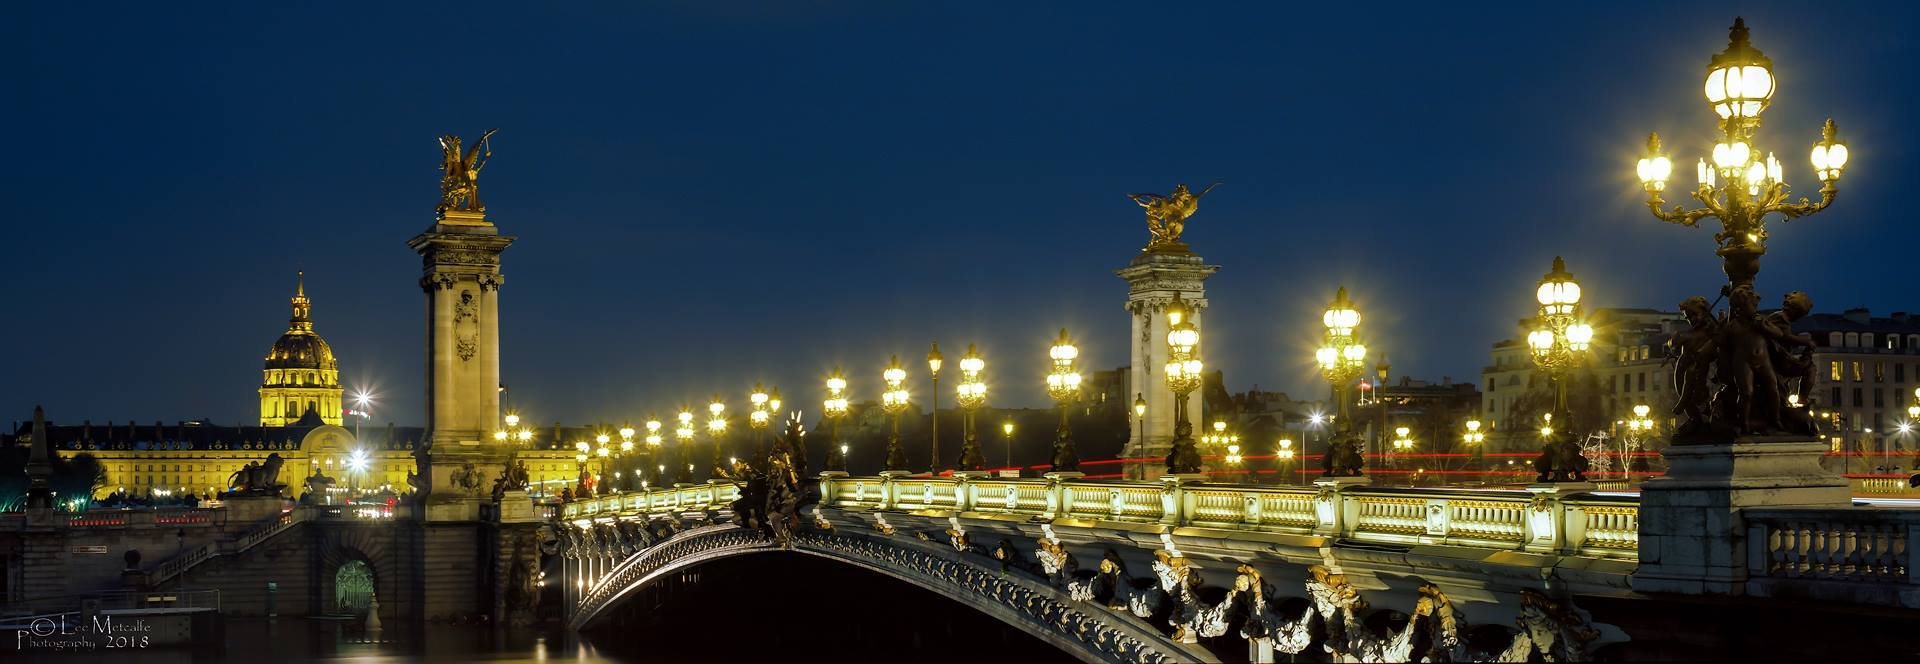 Pont Alexandre III, Hotel des Invalides and the River Seine at night, Paris, France